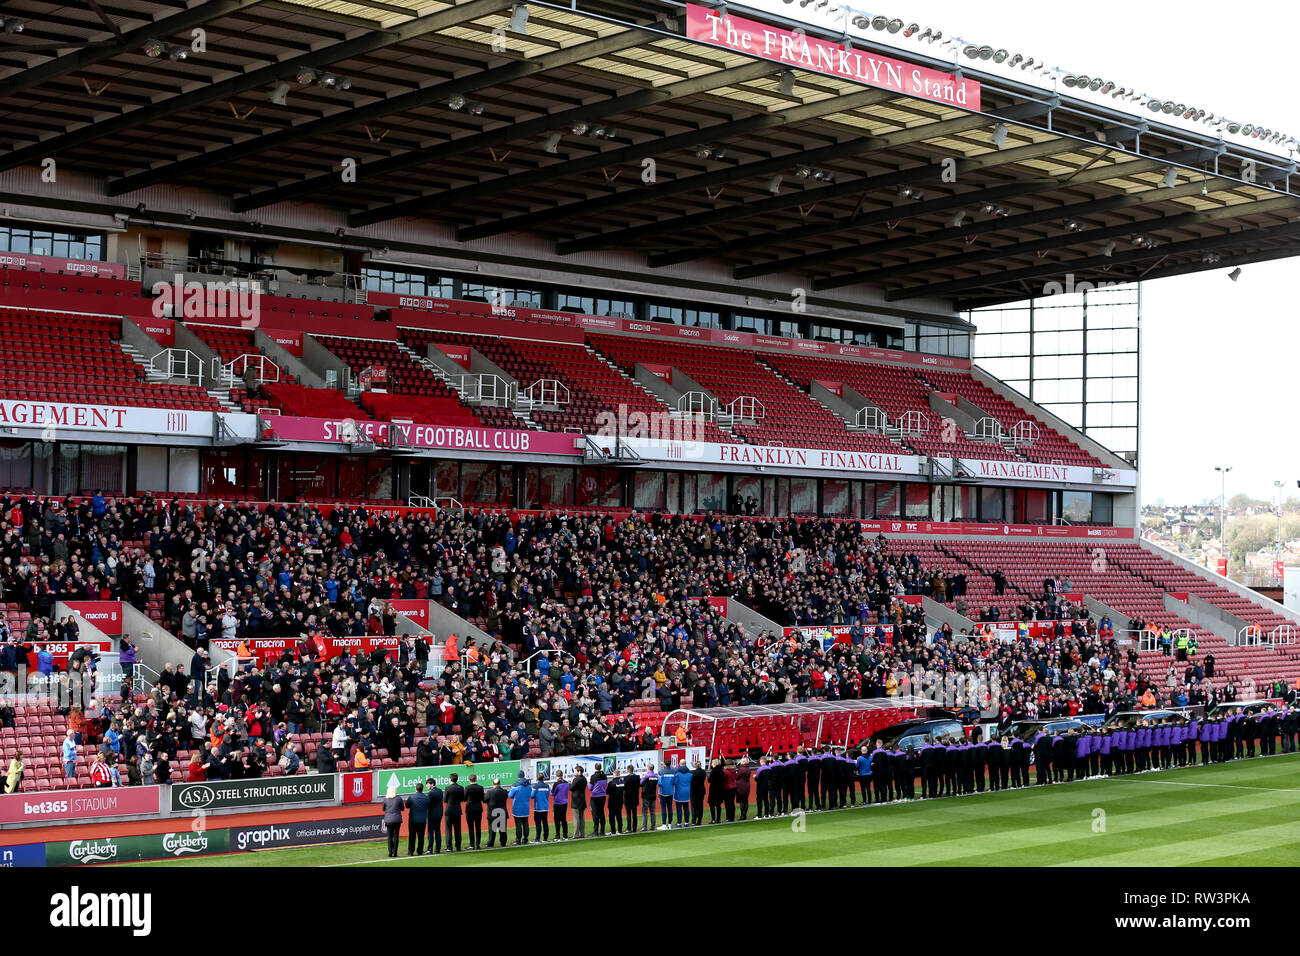 Stoke City fans, players and staff applaud as the Gordon Banks funeral cortege passes through the bet365 Stadium, Stoke. - Stock Image